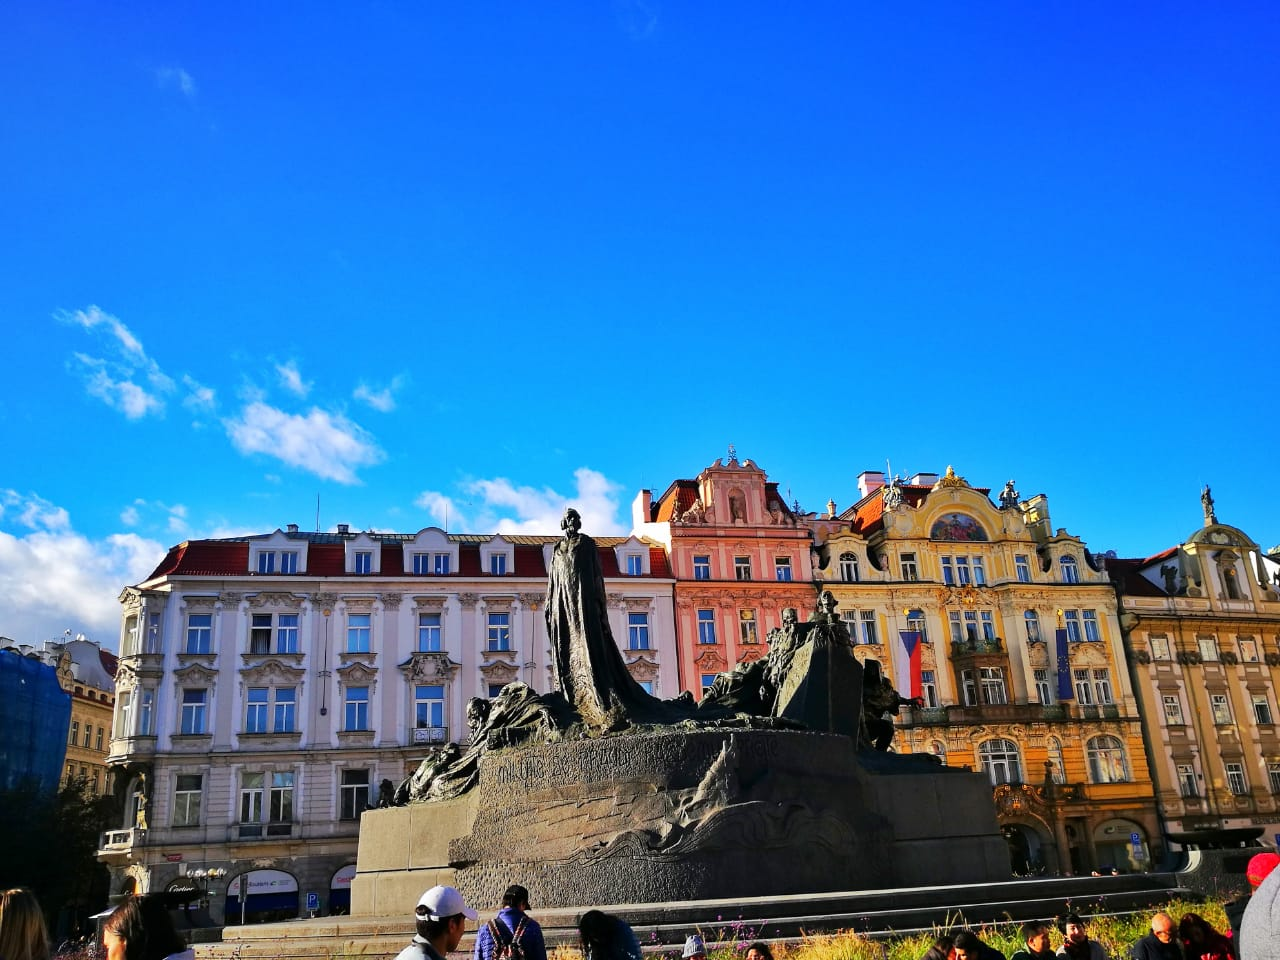 The Top 5 Things To See in Prague When You Have Limited Time24.jpeg